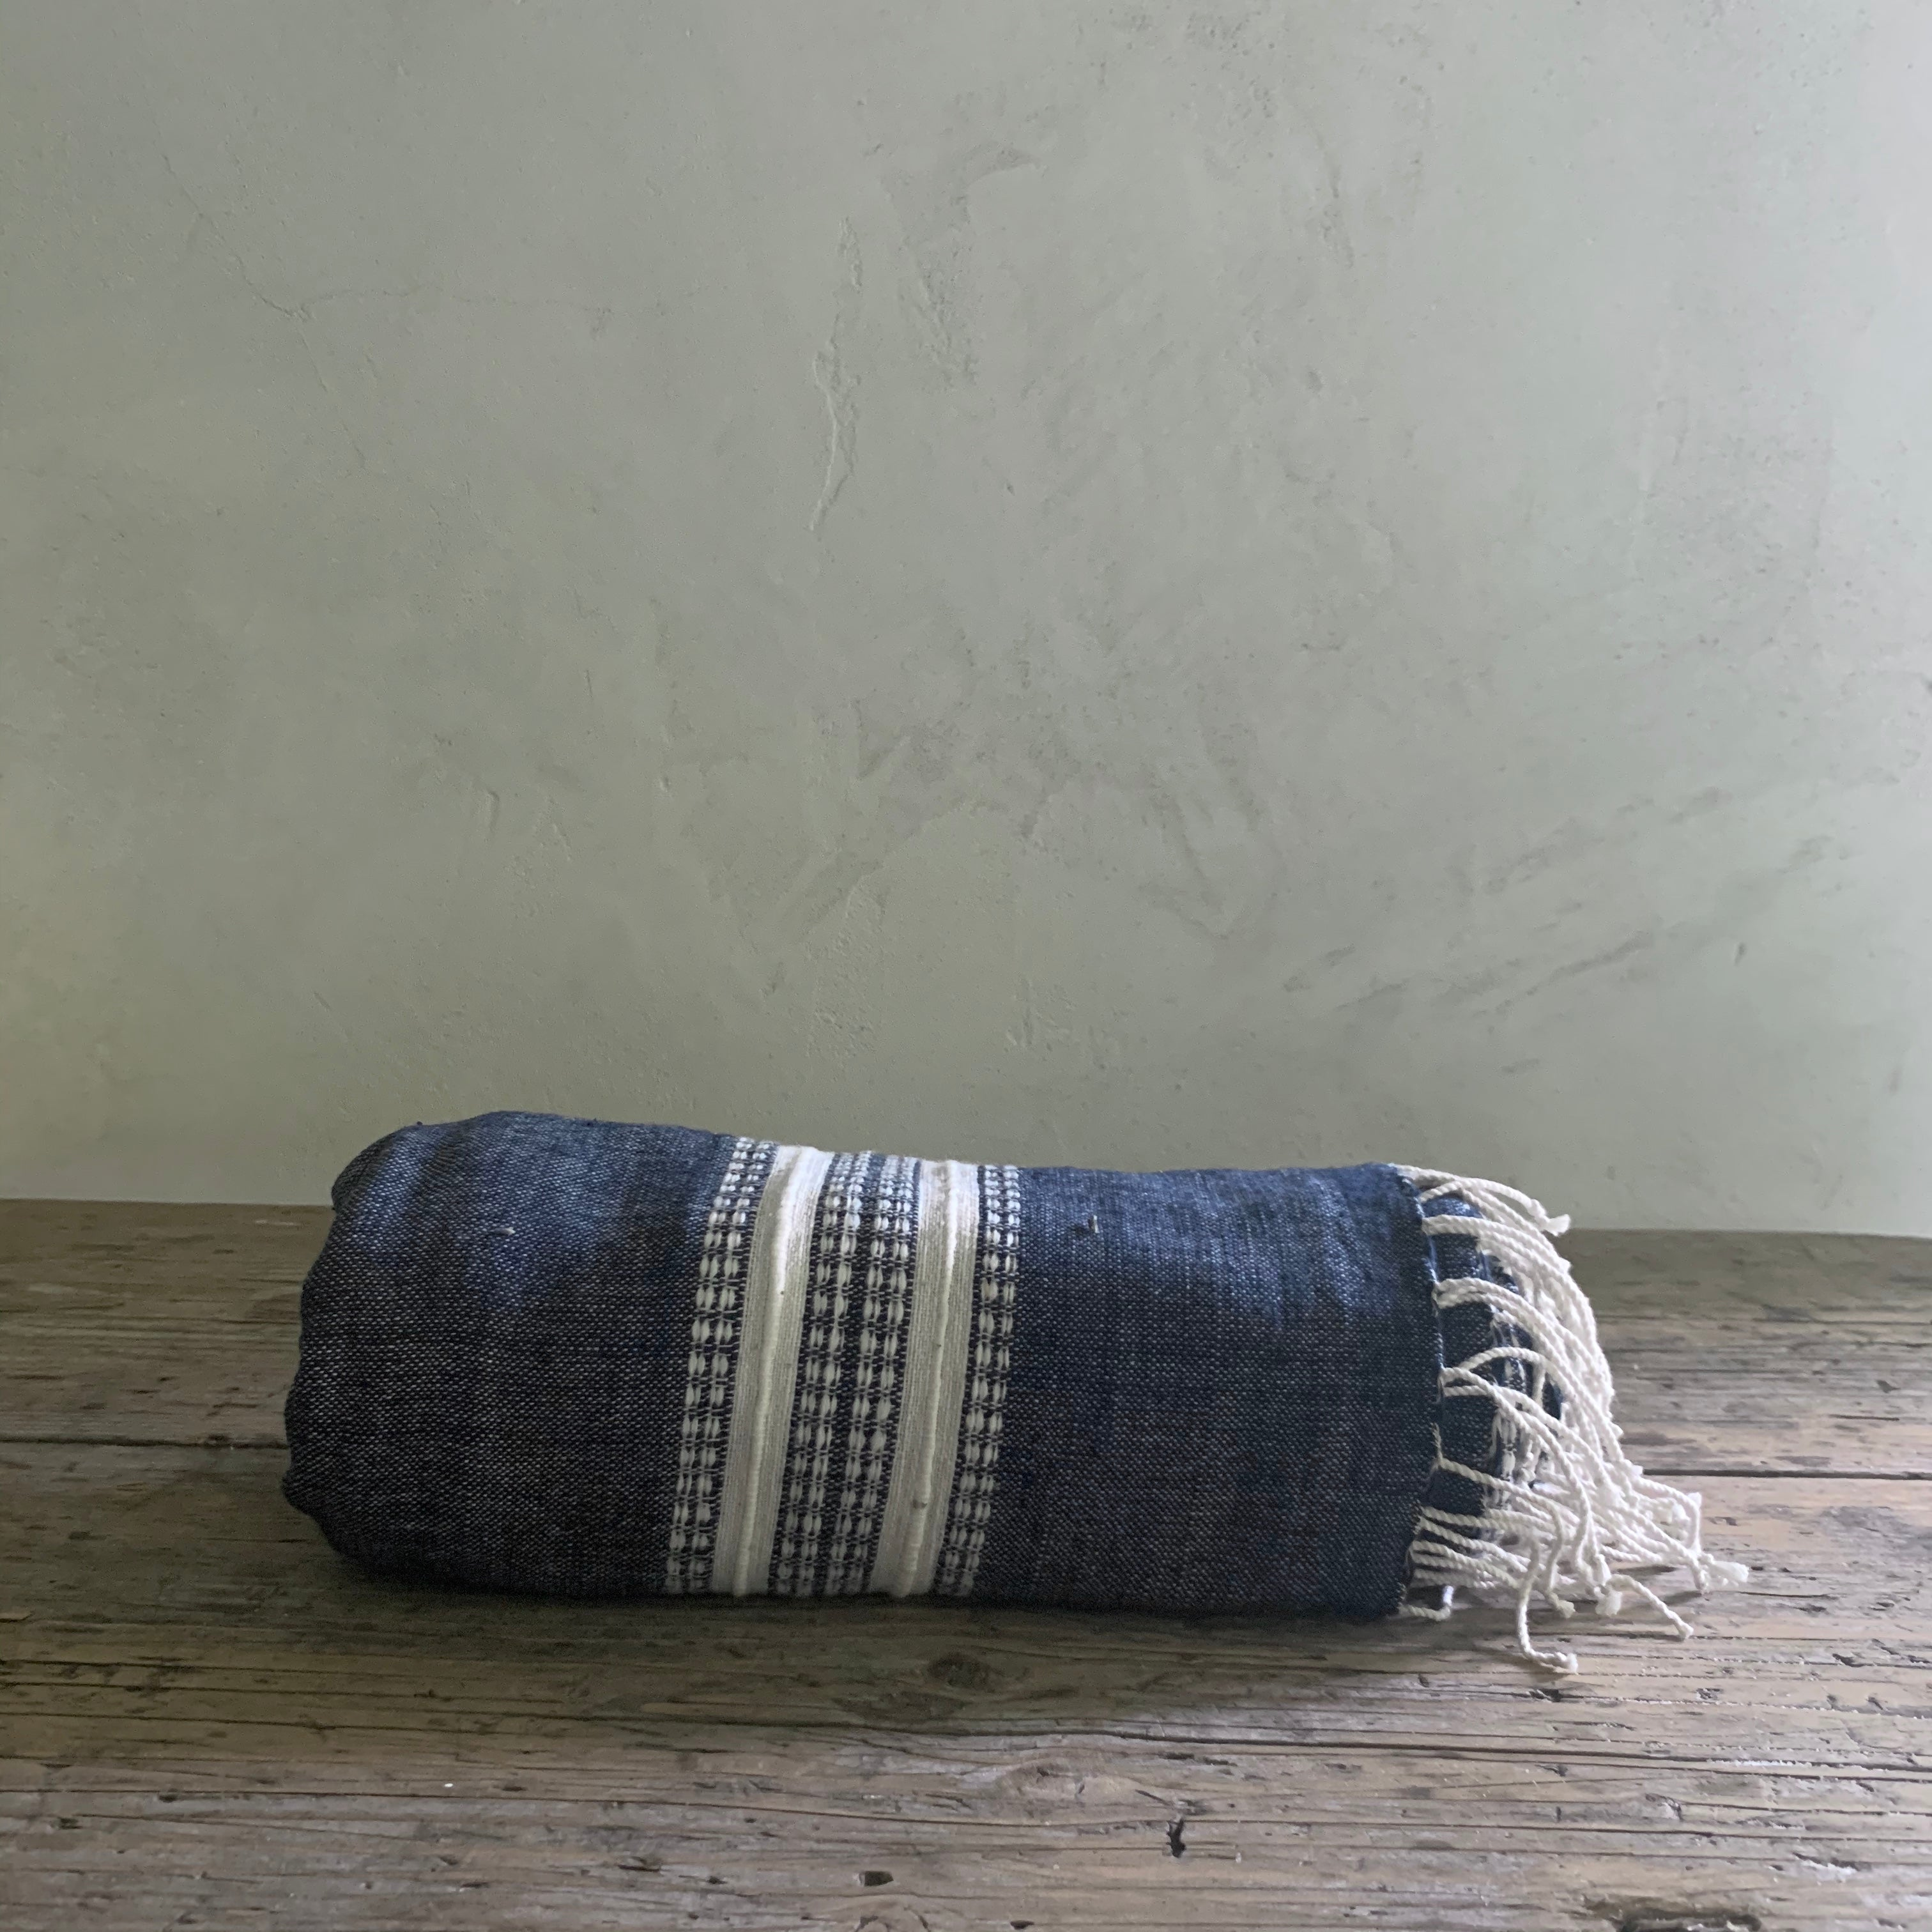 handwoven bath + beach towel- navy with natural